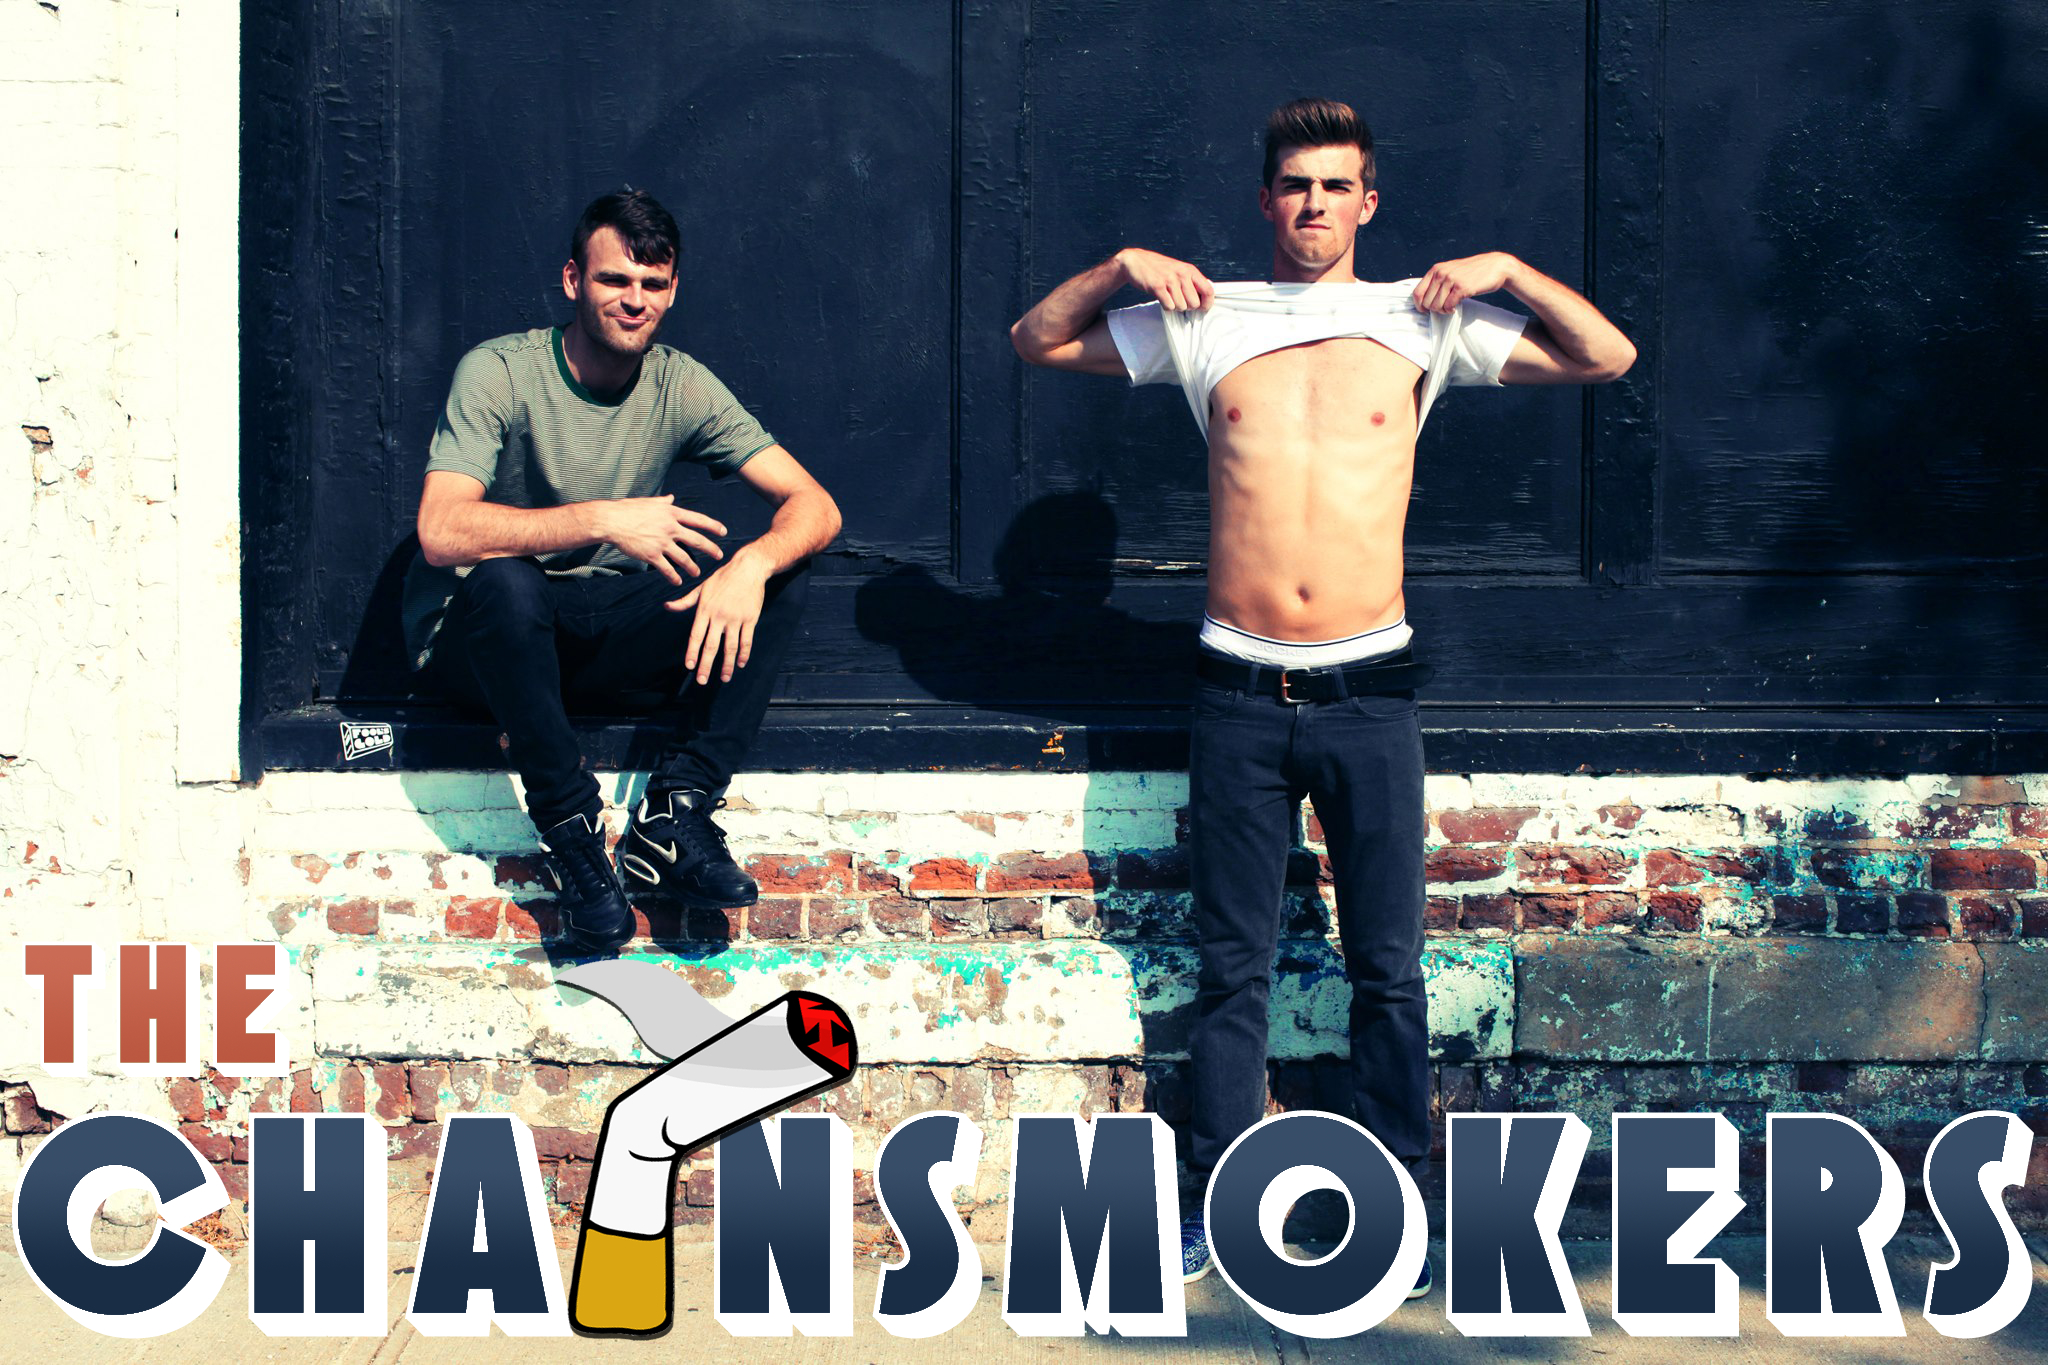 The Chainsmokers Wallpapers Chainsmokers Dj 298634 Hd